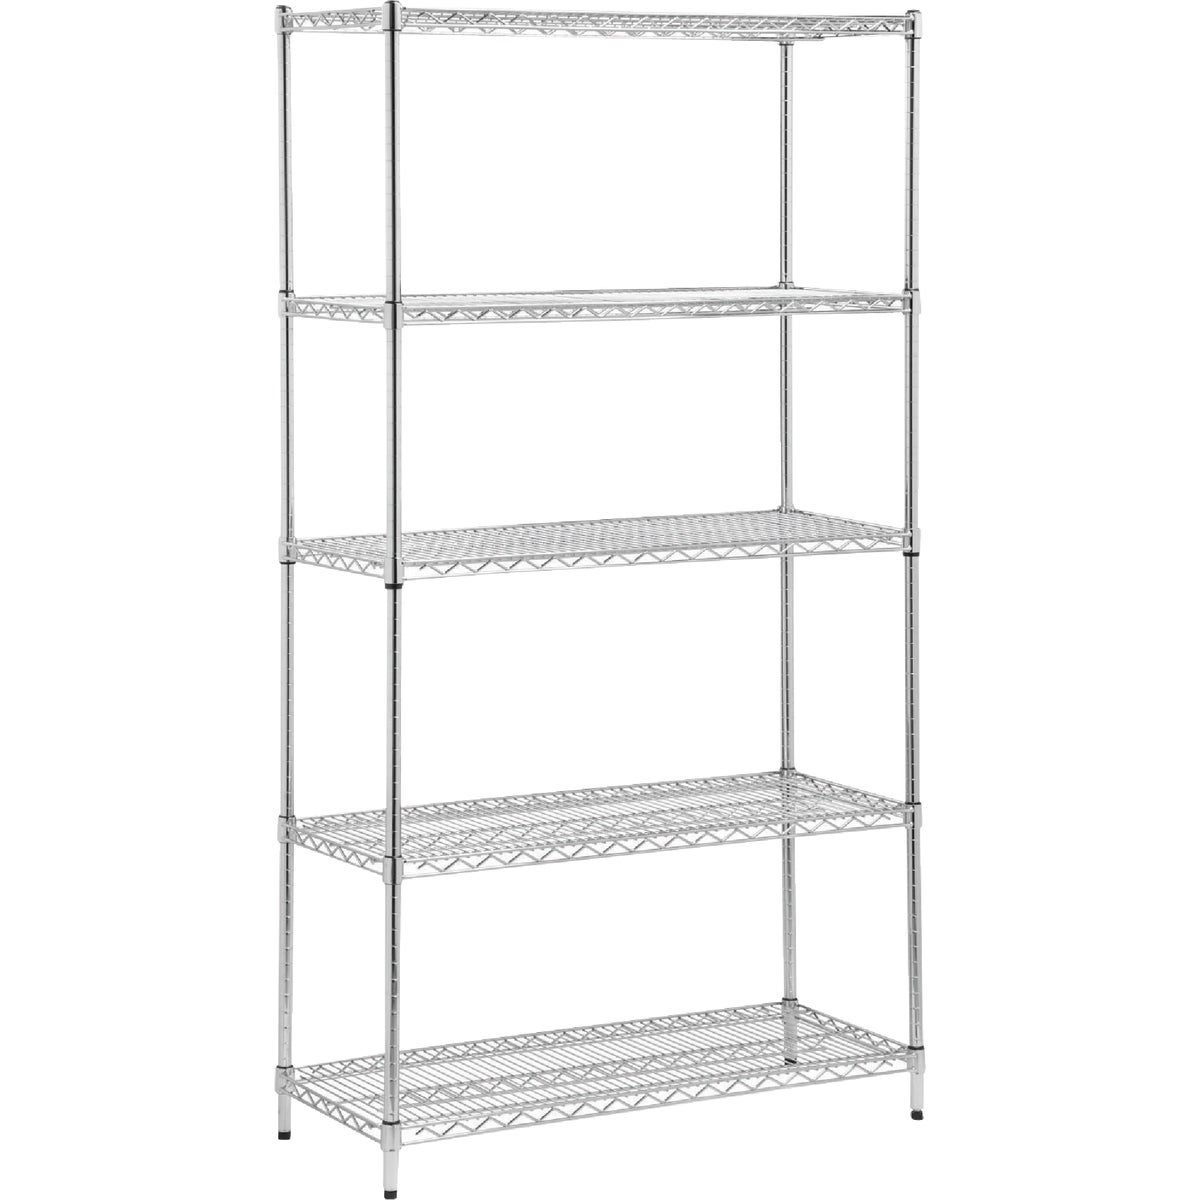 CHR 5 TIER HVY DTY SHELF - SHF-01441 by Honey Can Do